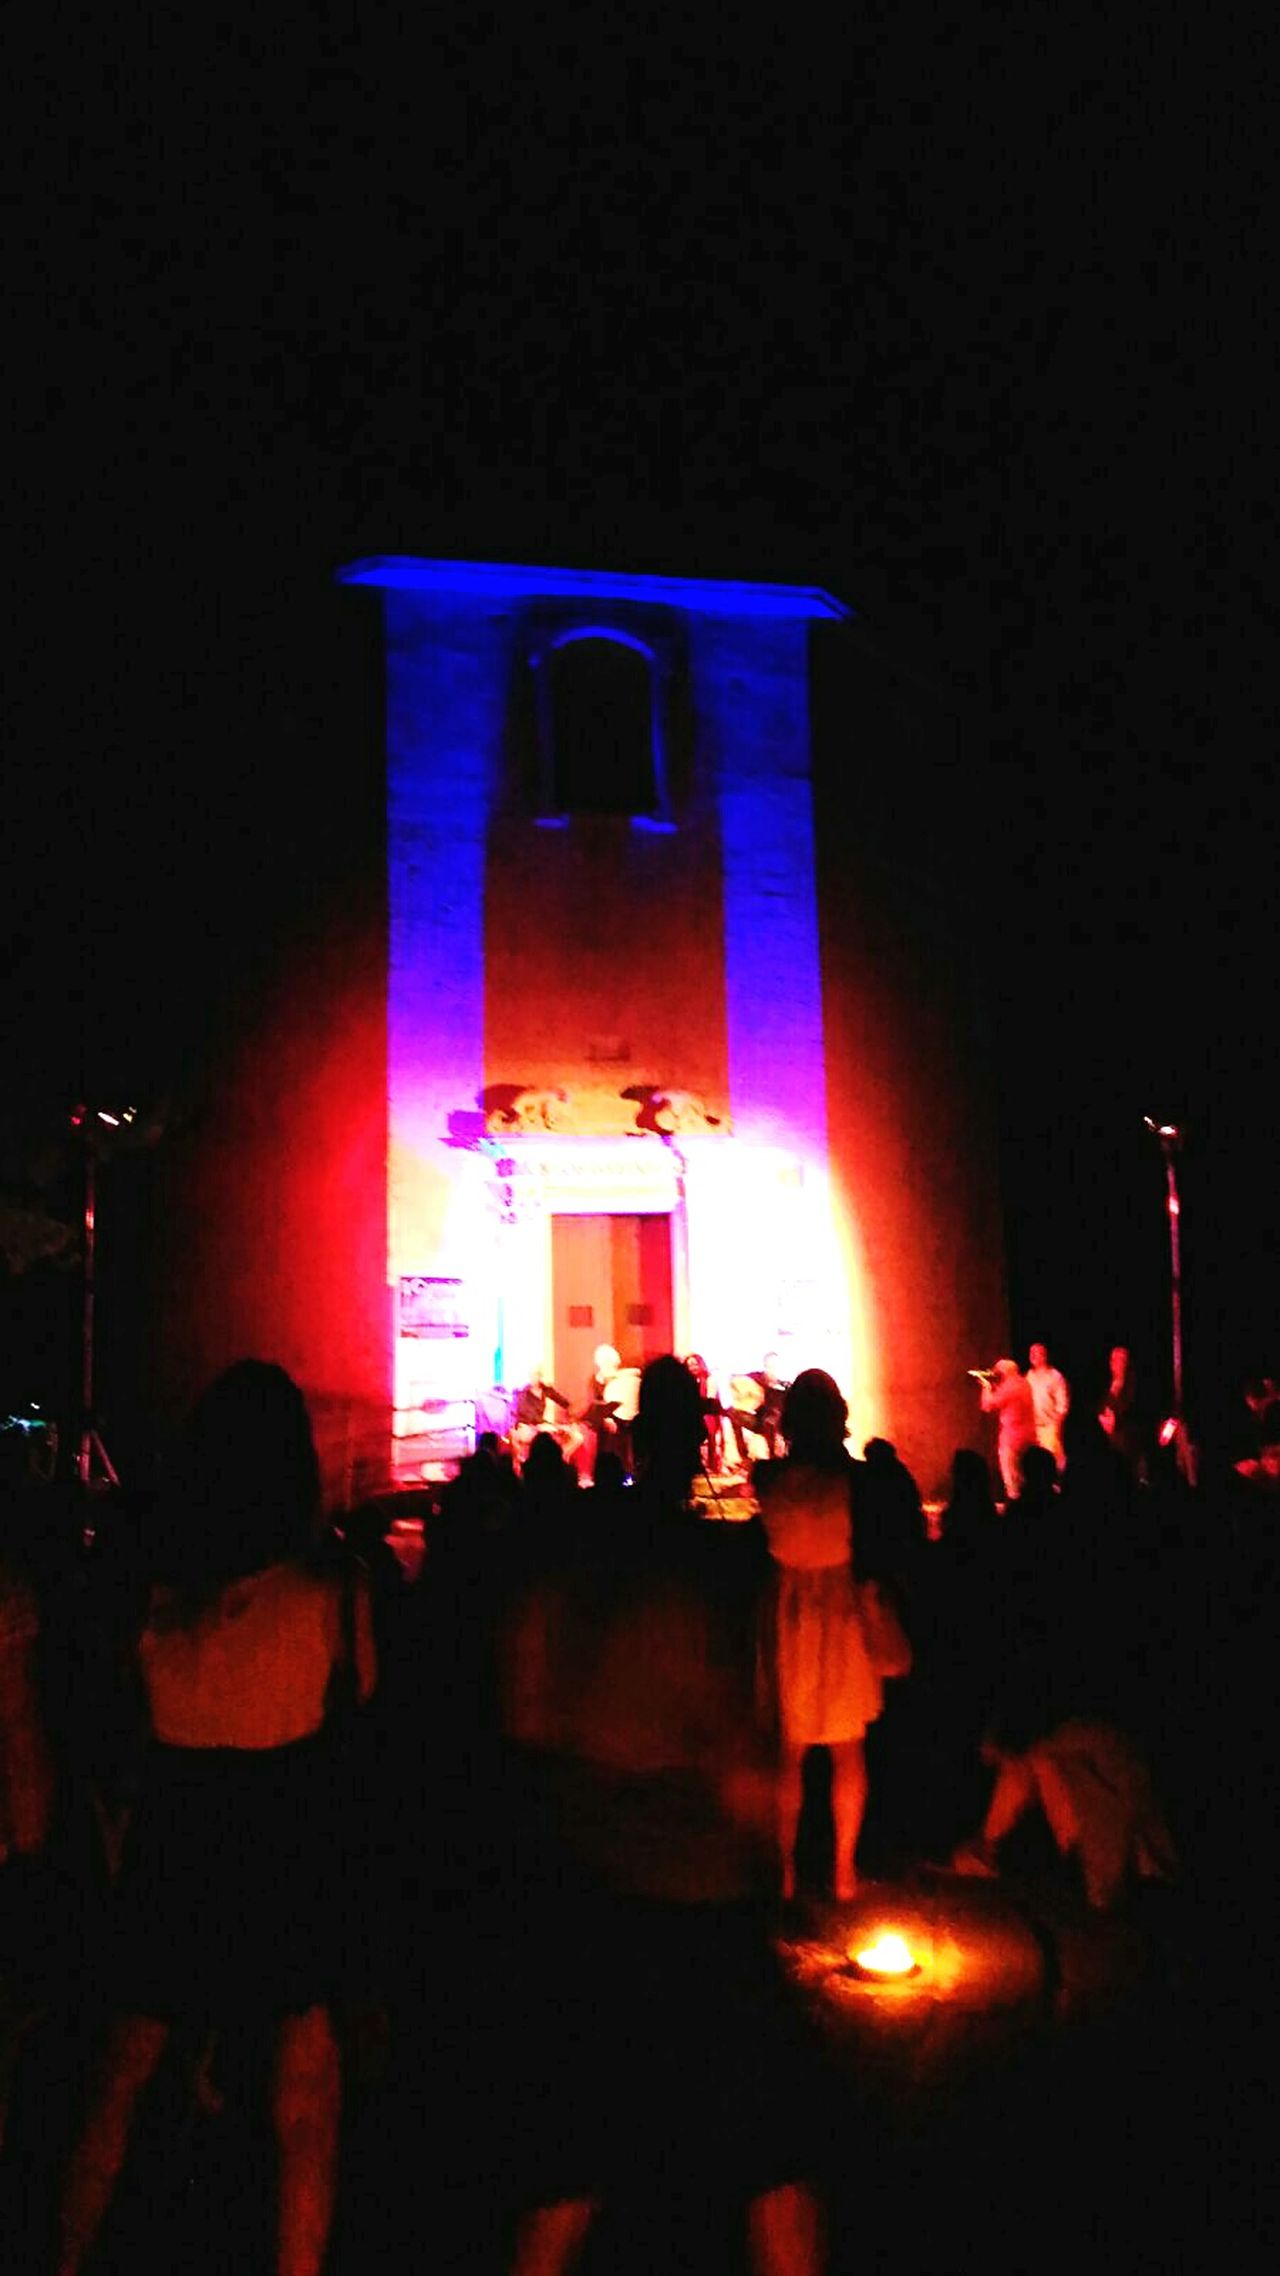 Salento Chiesa Dei Diavoli Tricase Summer's Holidays Night Musician